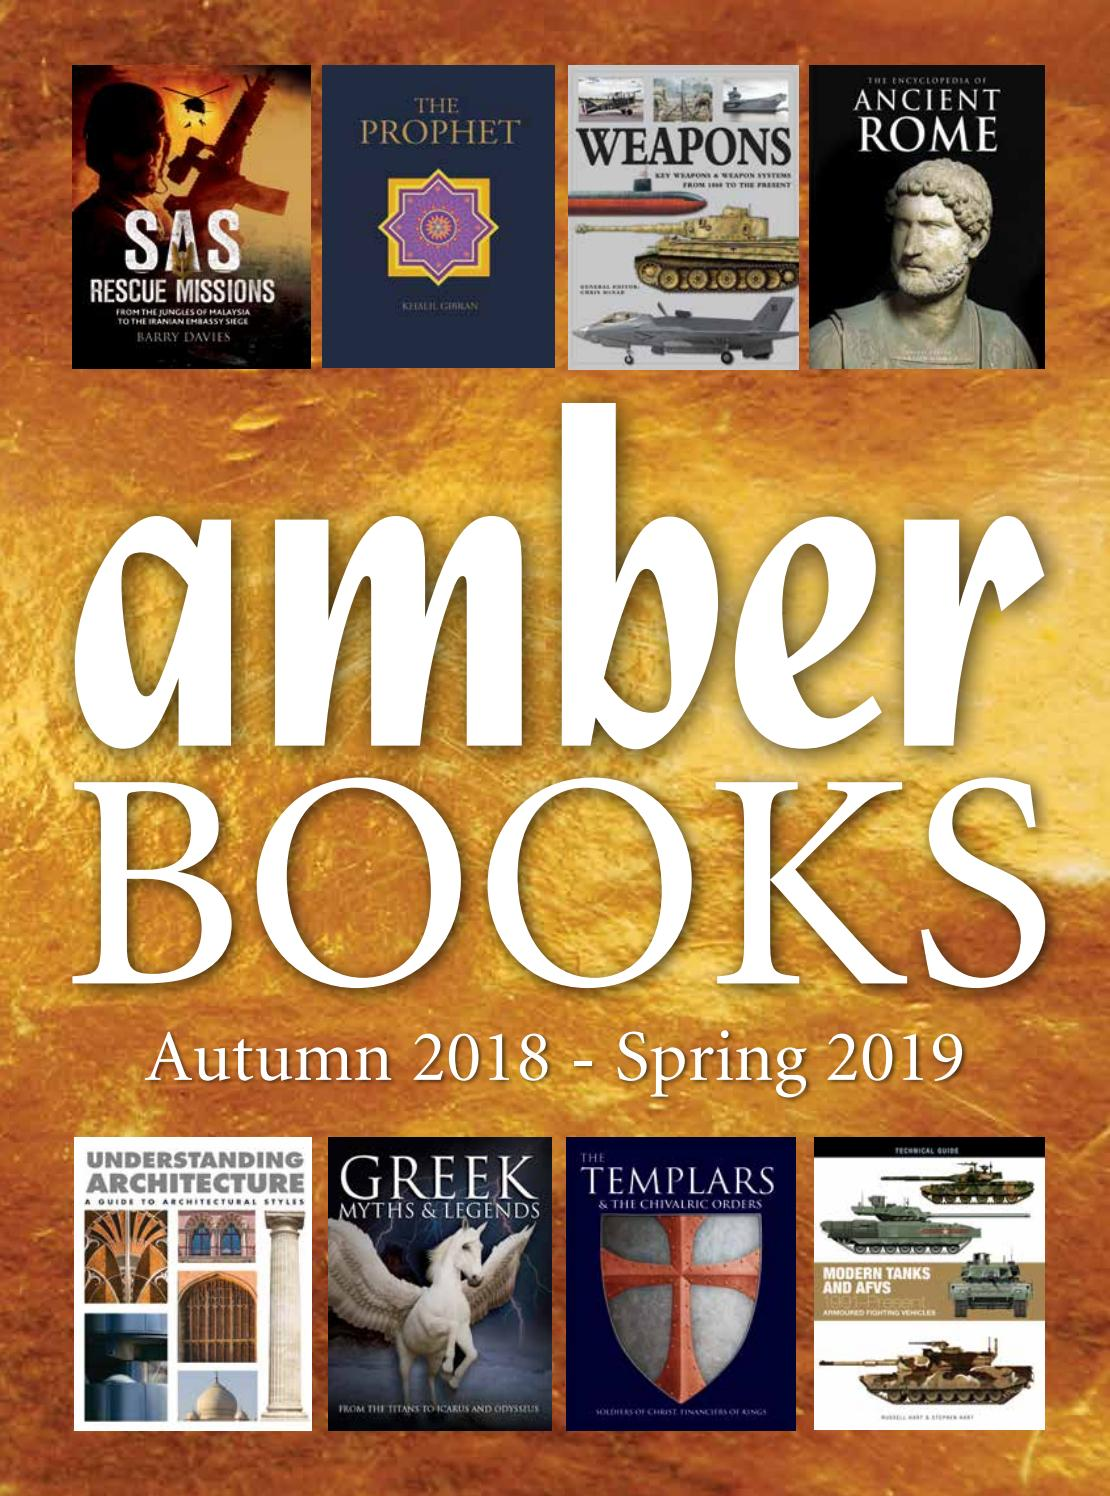 Amber Books Autumn 2018 / Spring 2019 Catalogue by Gunnar